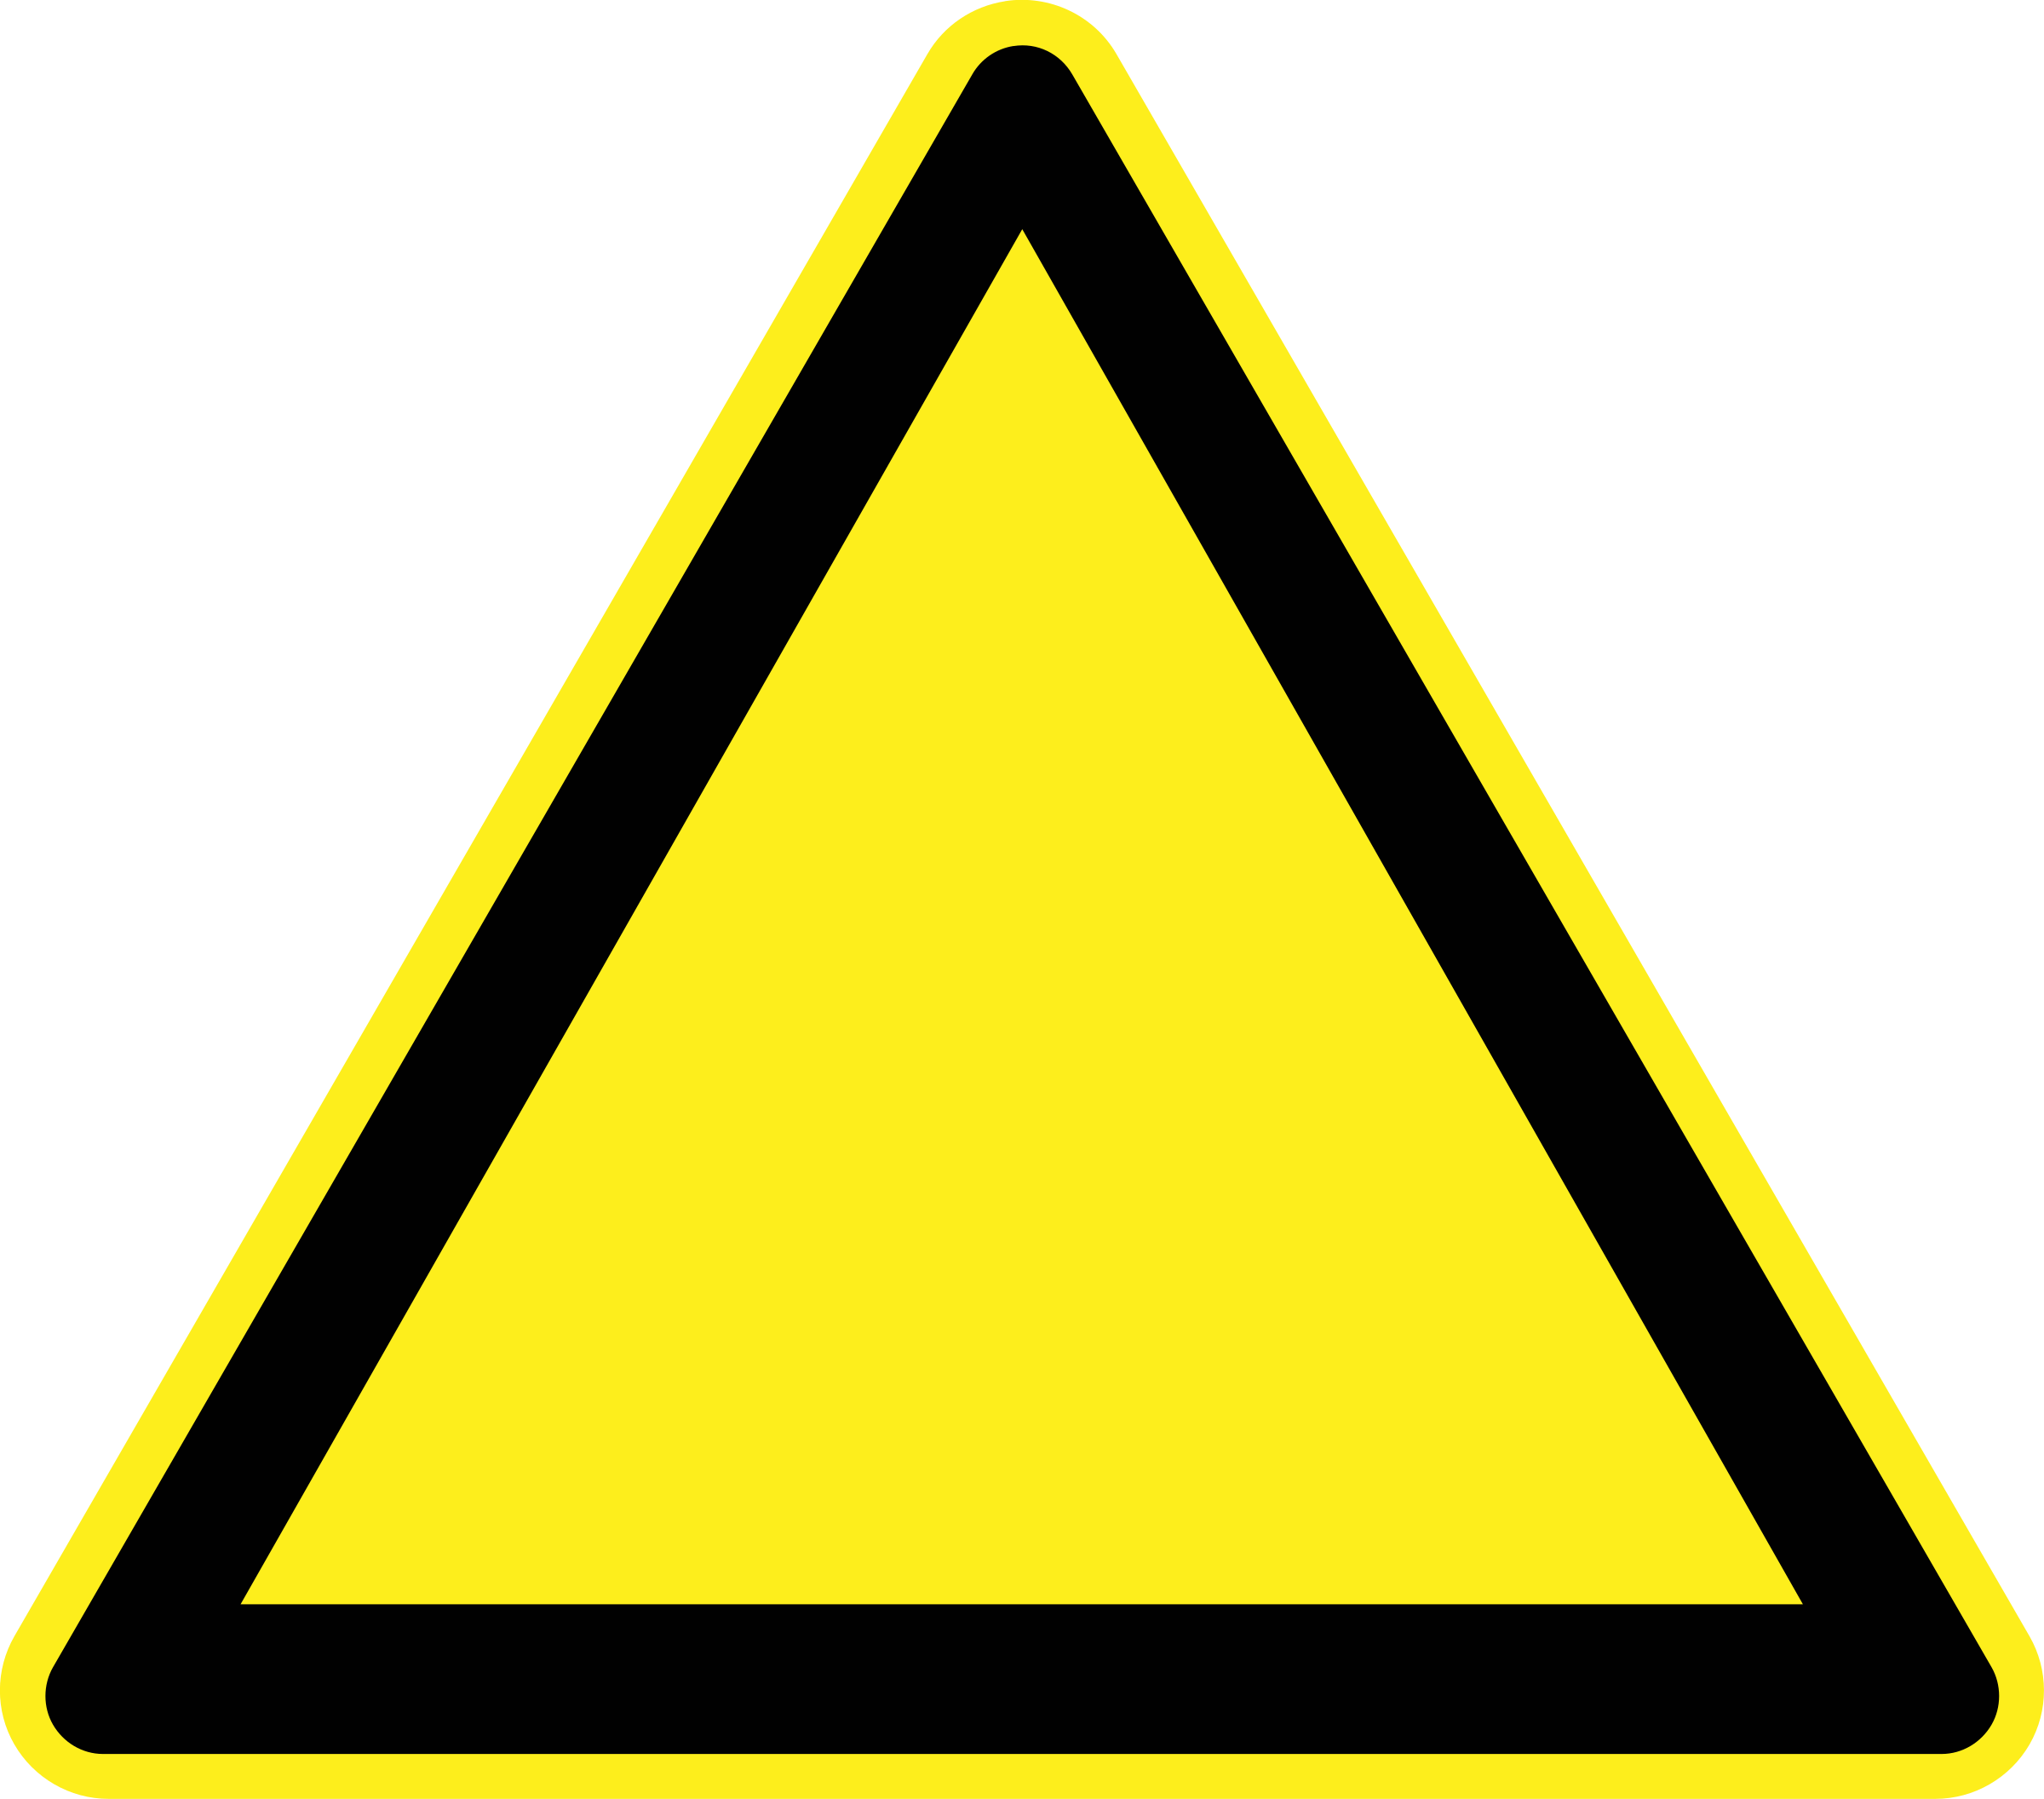 Emergency clipart danger symbol. Caution sign free download